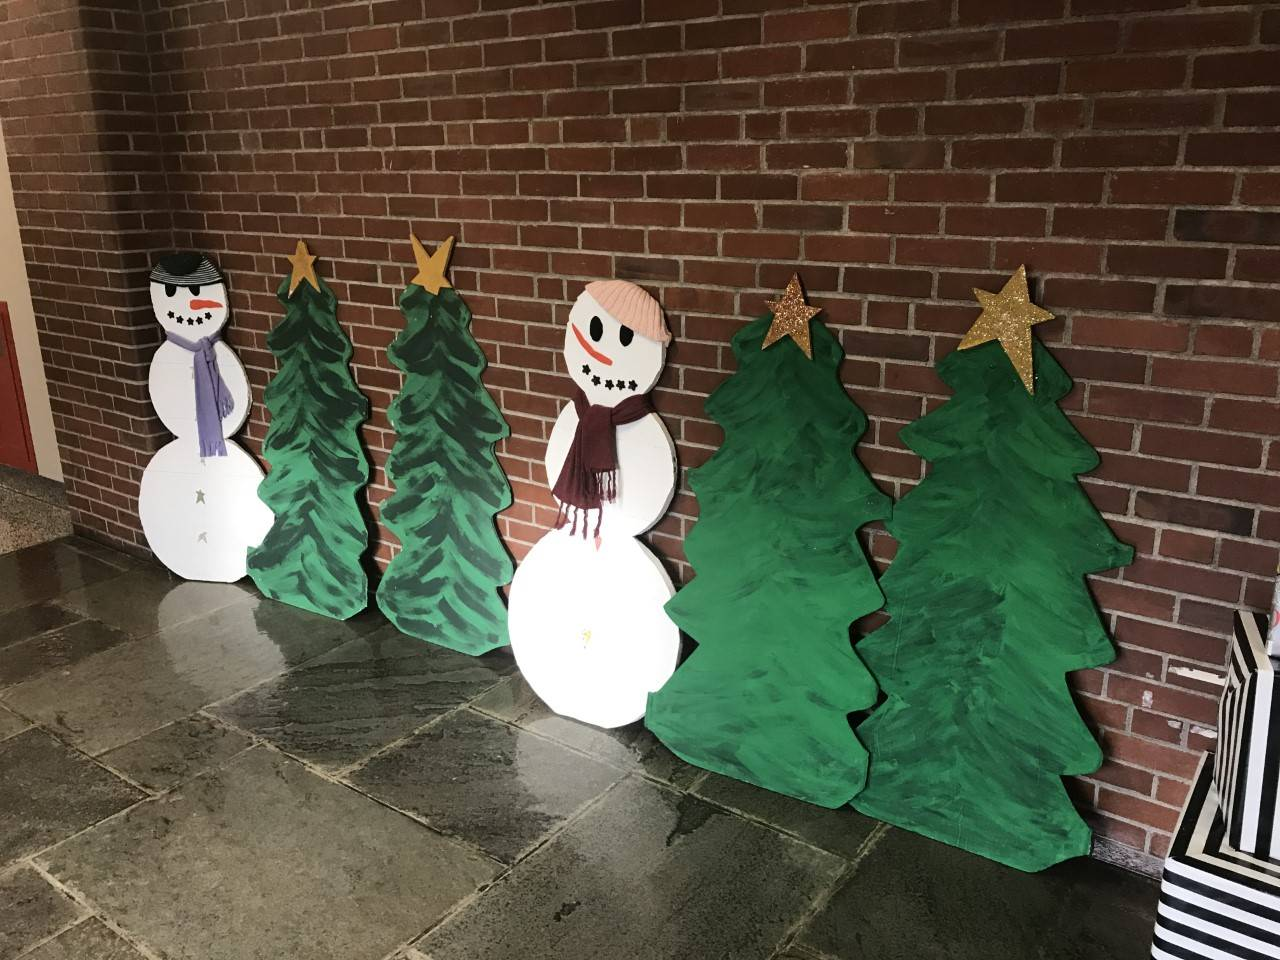 Photo of Intermediate School lobby with holiday decorations